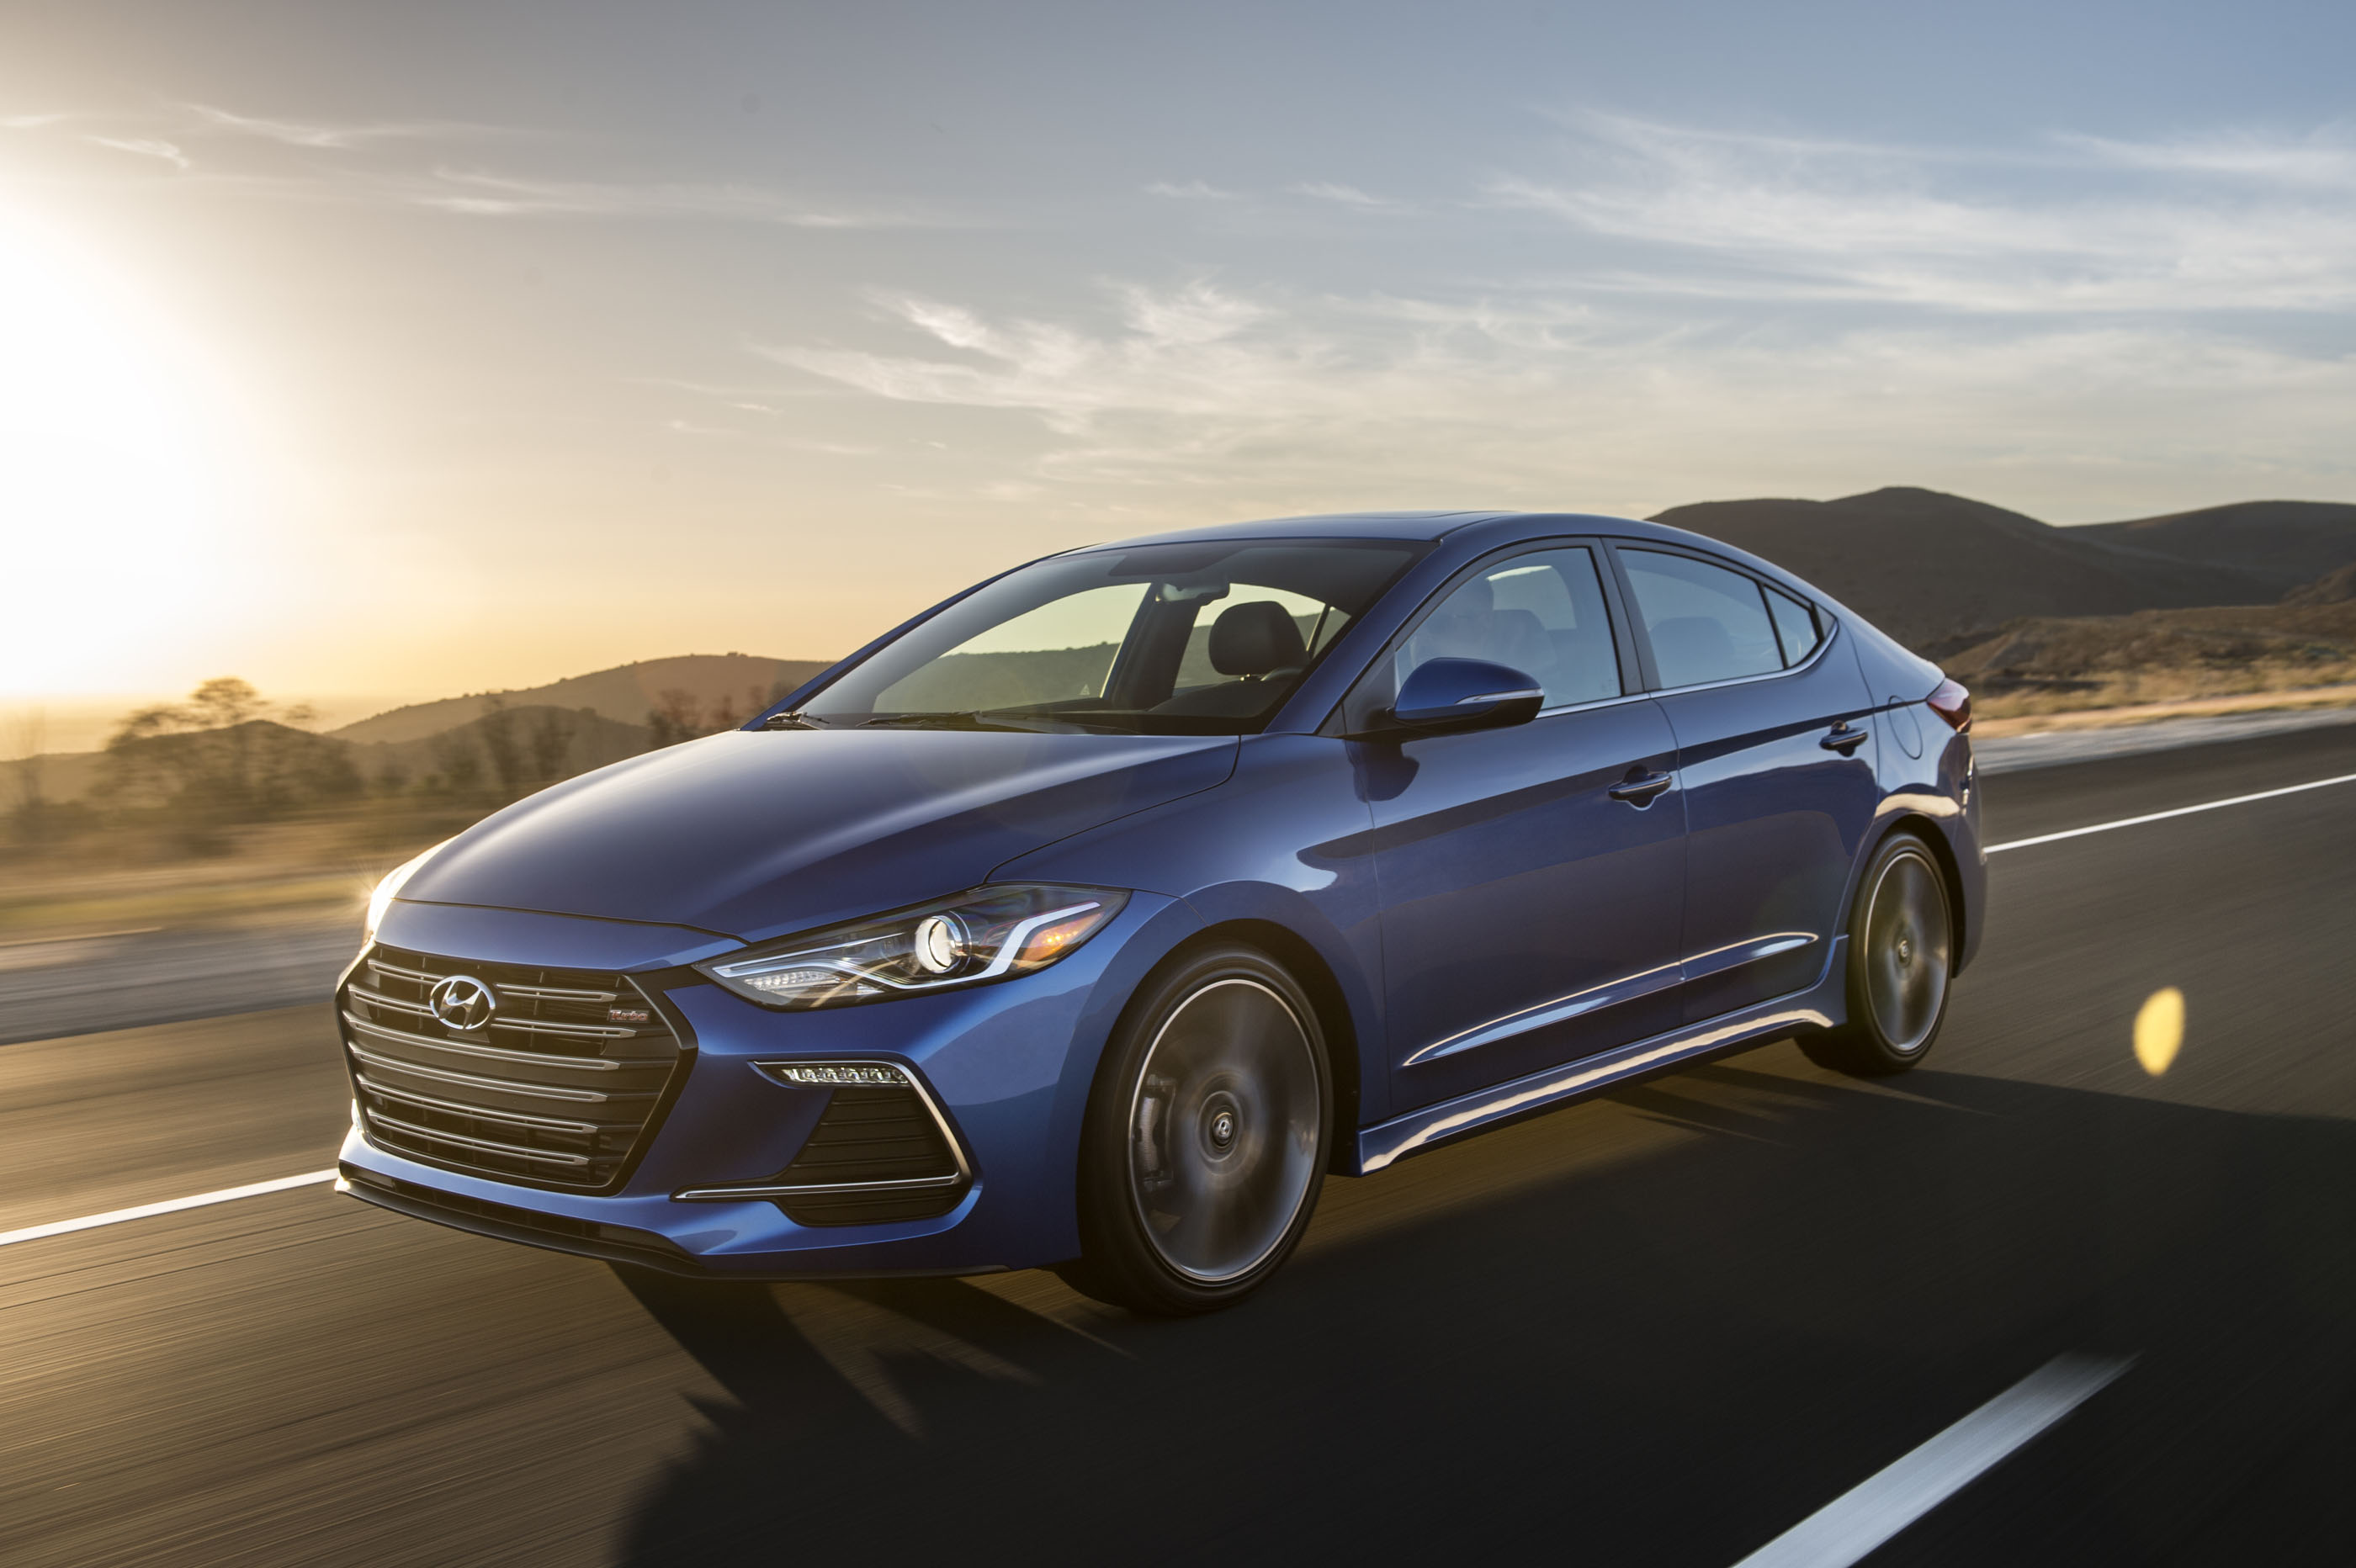 2017 Hyundai Elantra Review, Ratings, Specs, Prices, and